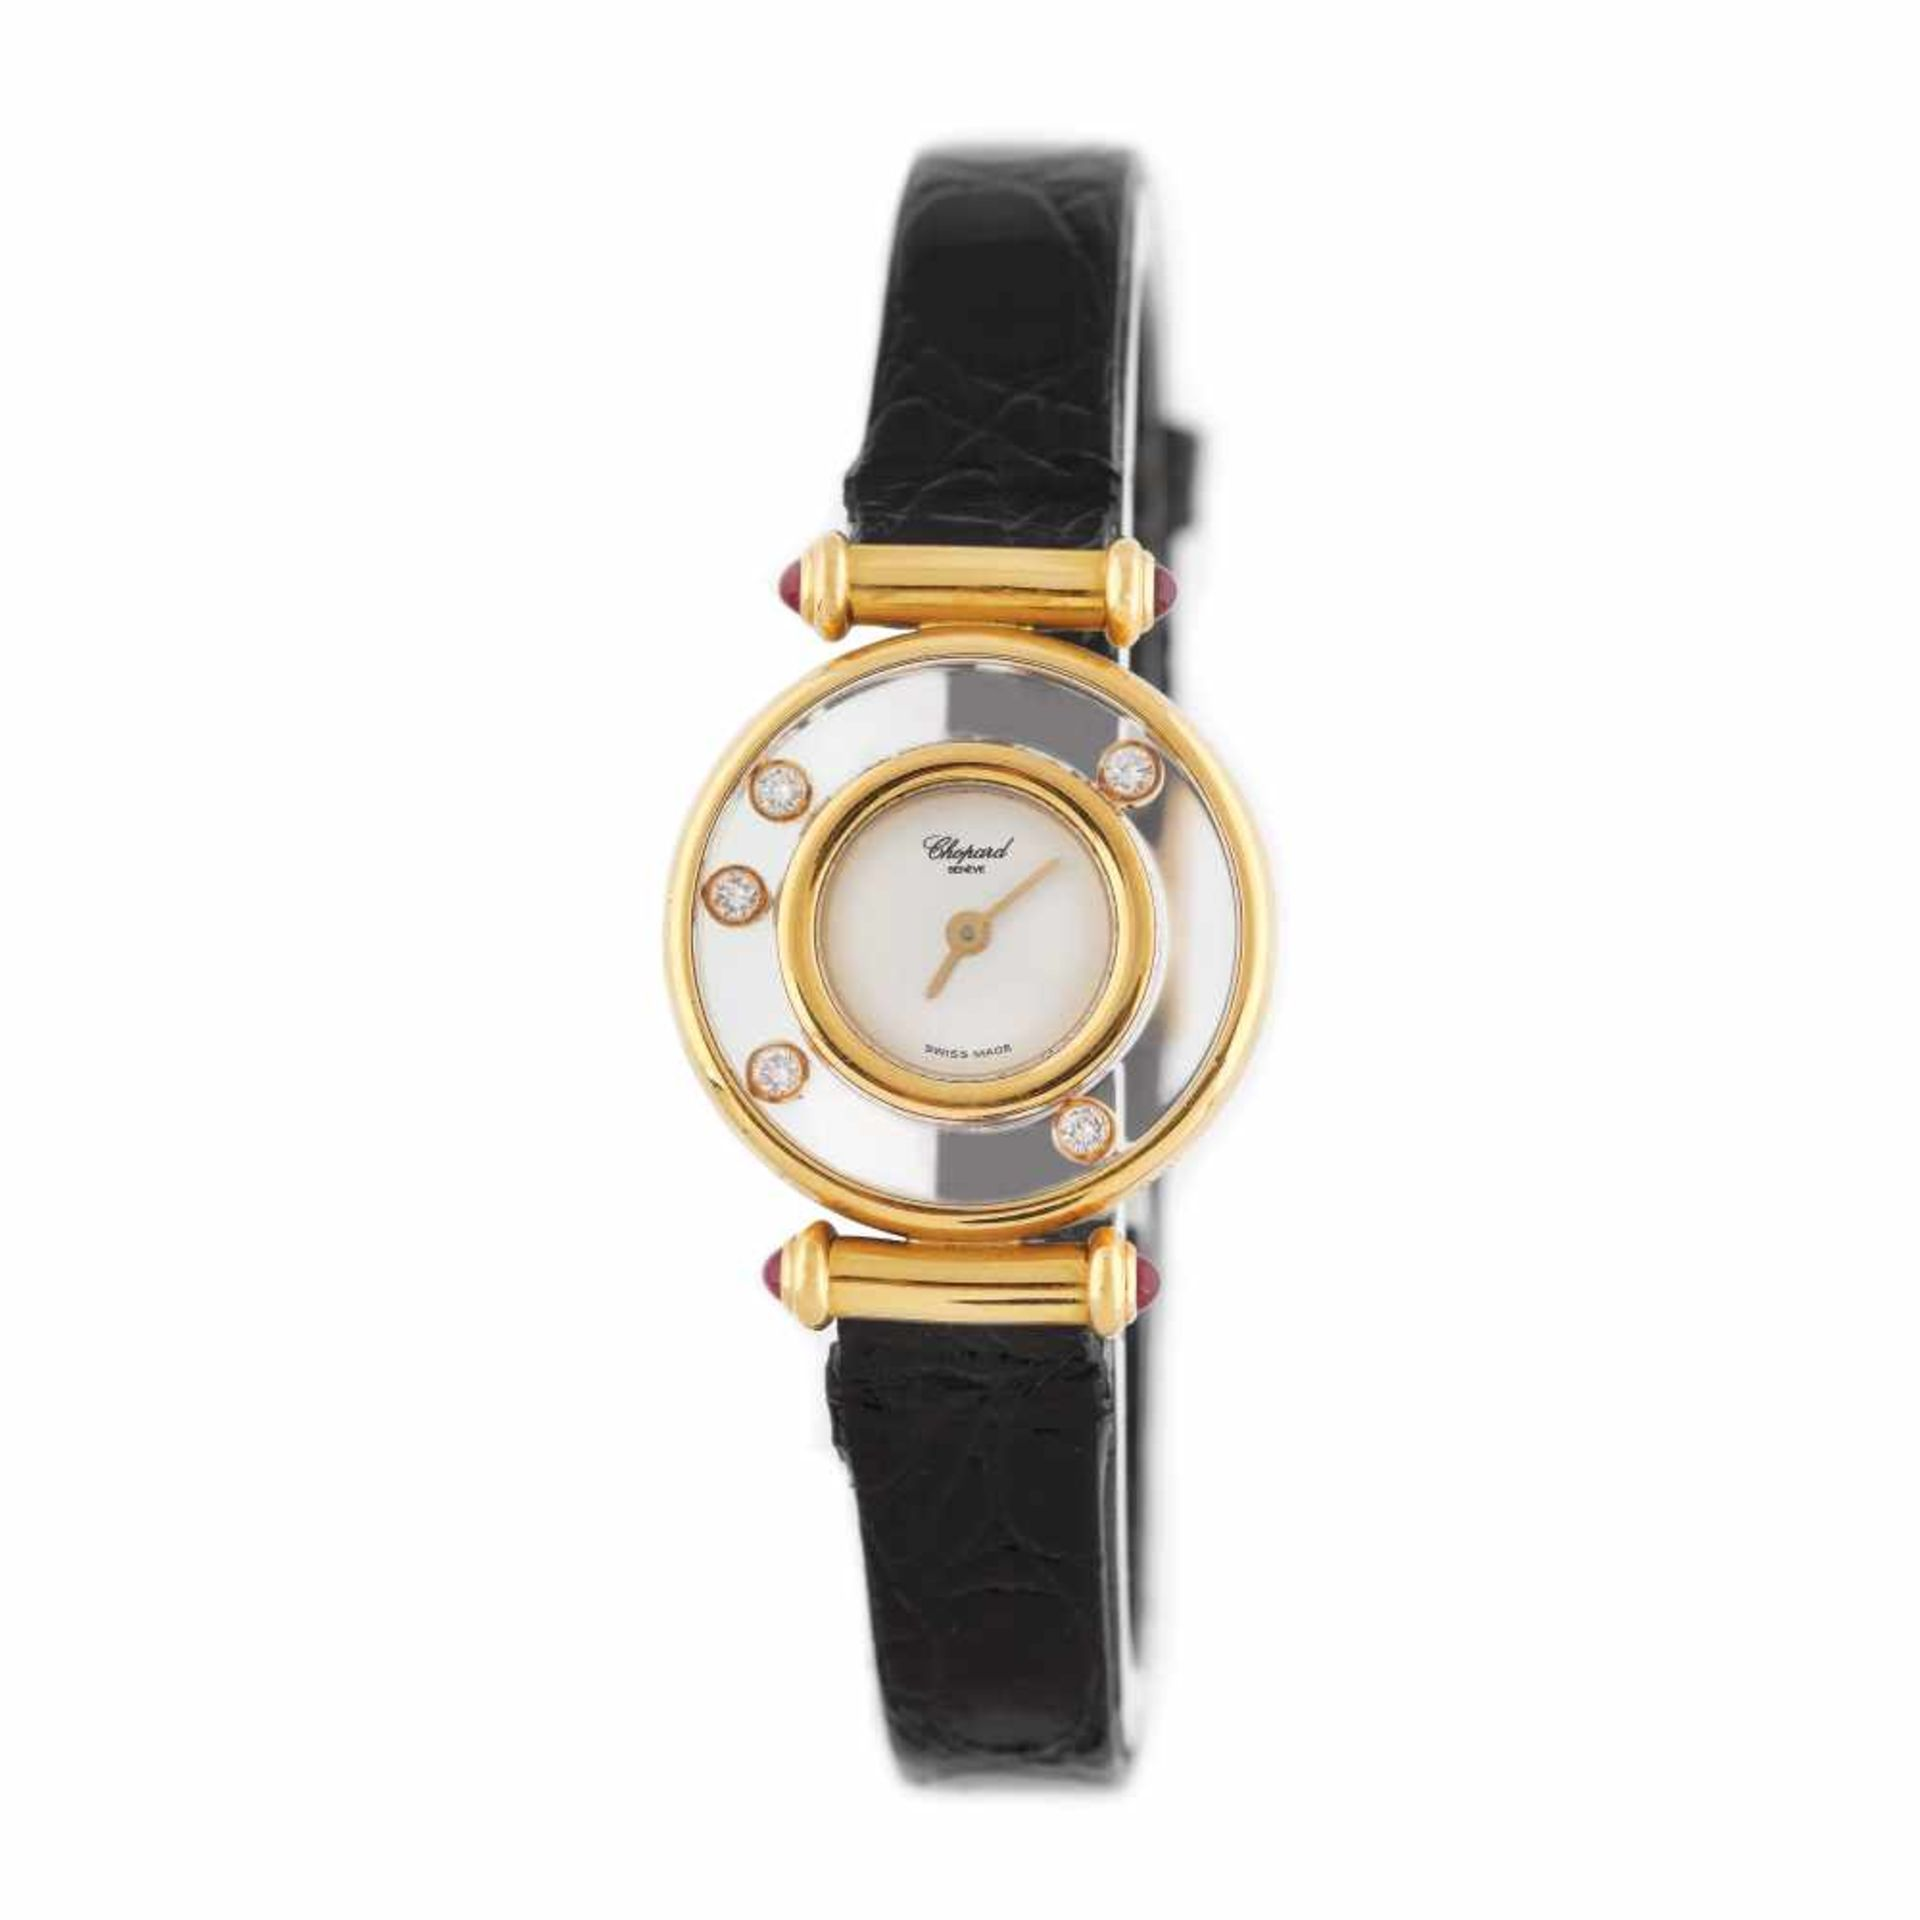 Chopard Happy Diamonds wristwatch, gold, women, decorated with diamonds and rubies, setting pin and